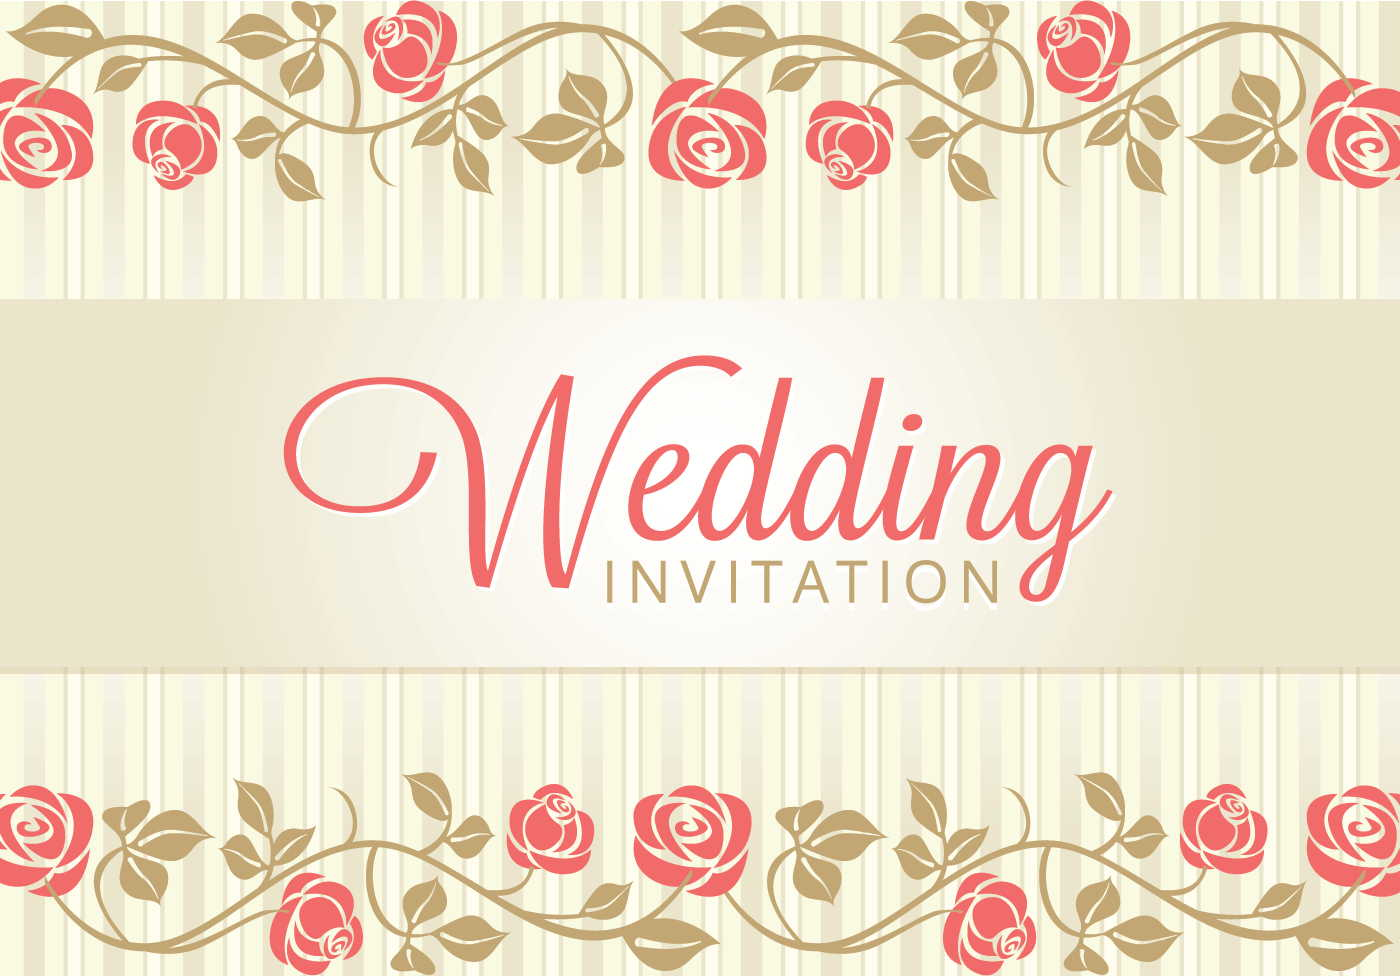 Invitation Cards For Wedding: Vintage Wedding Backgrounds